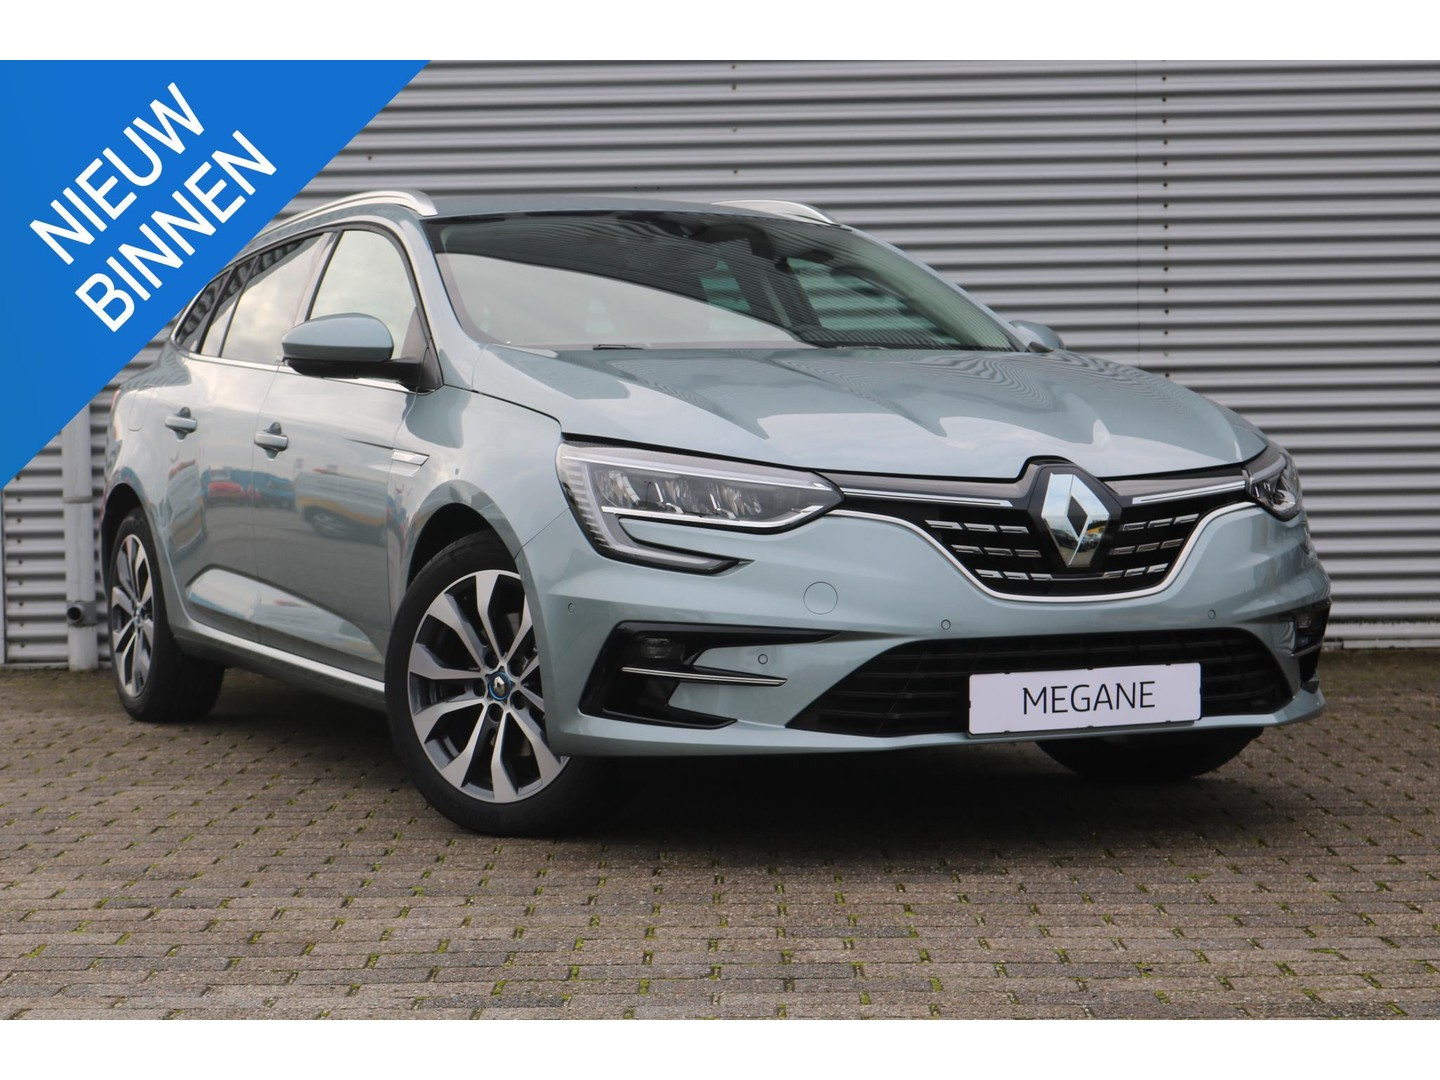 Renault Mégane Estate 1.6 plug-in hybrid business edition one